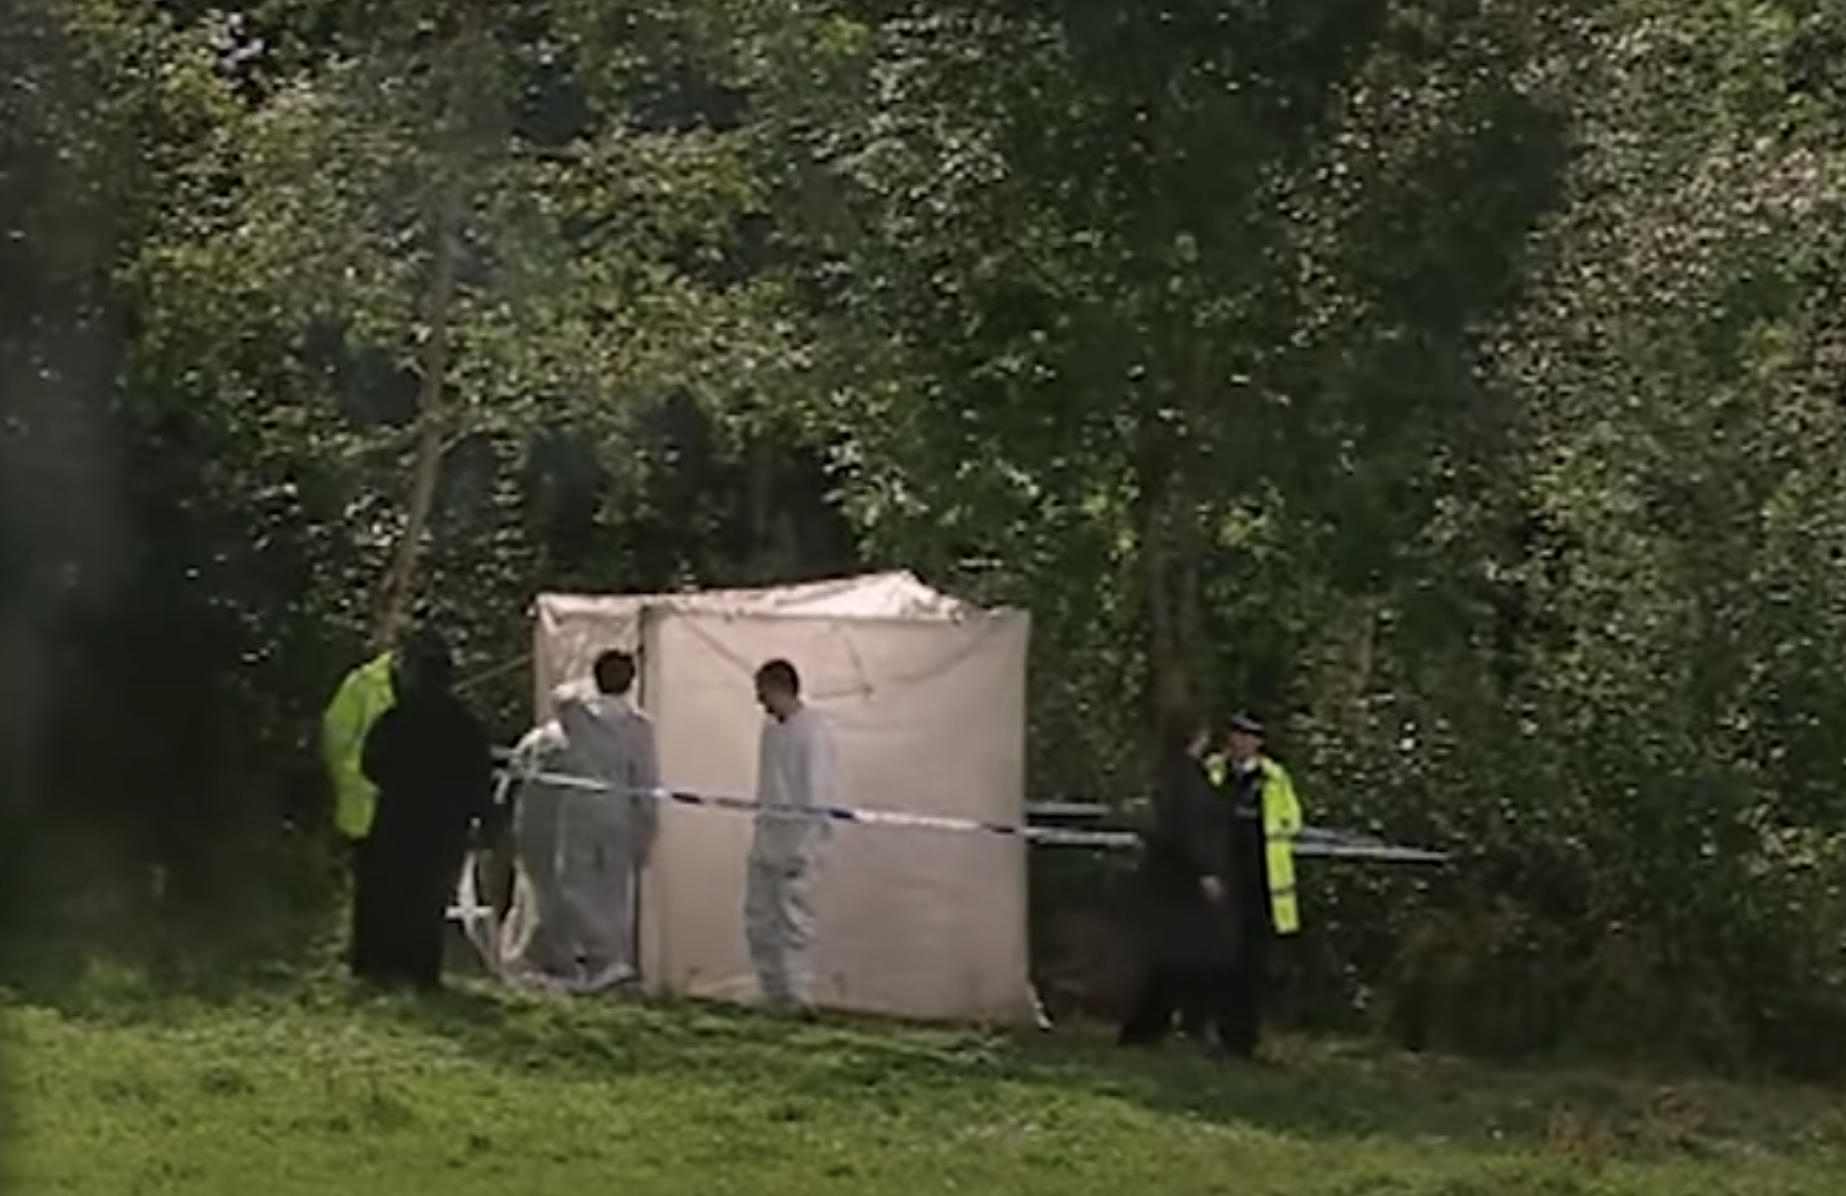 Forensic tent and police officers in the school playground